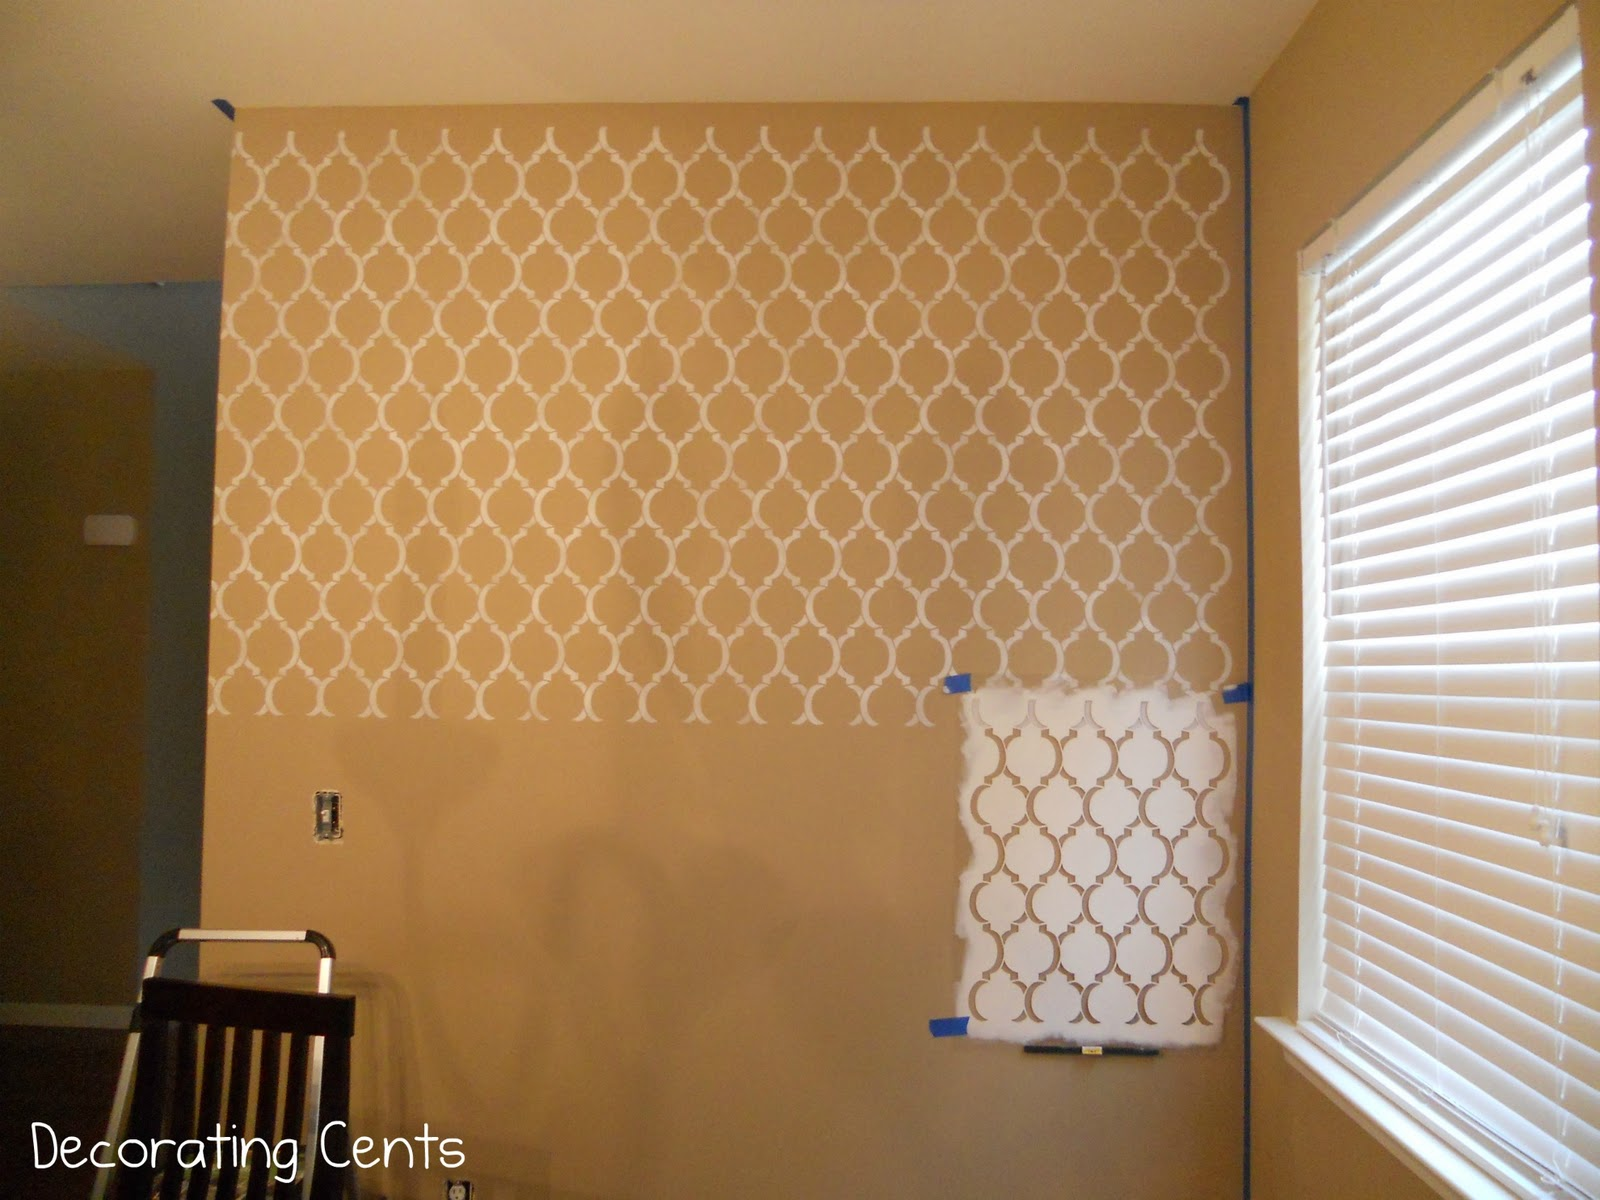 Decorating Cents: A Stenciled Wall